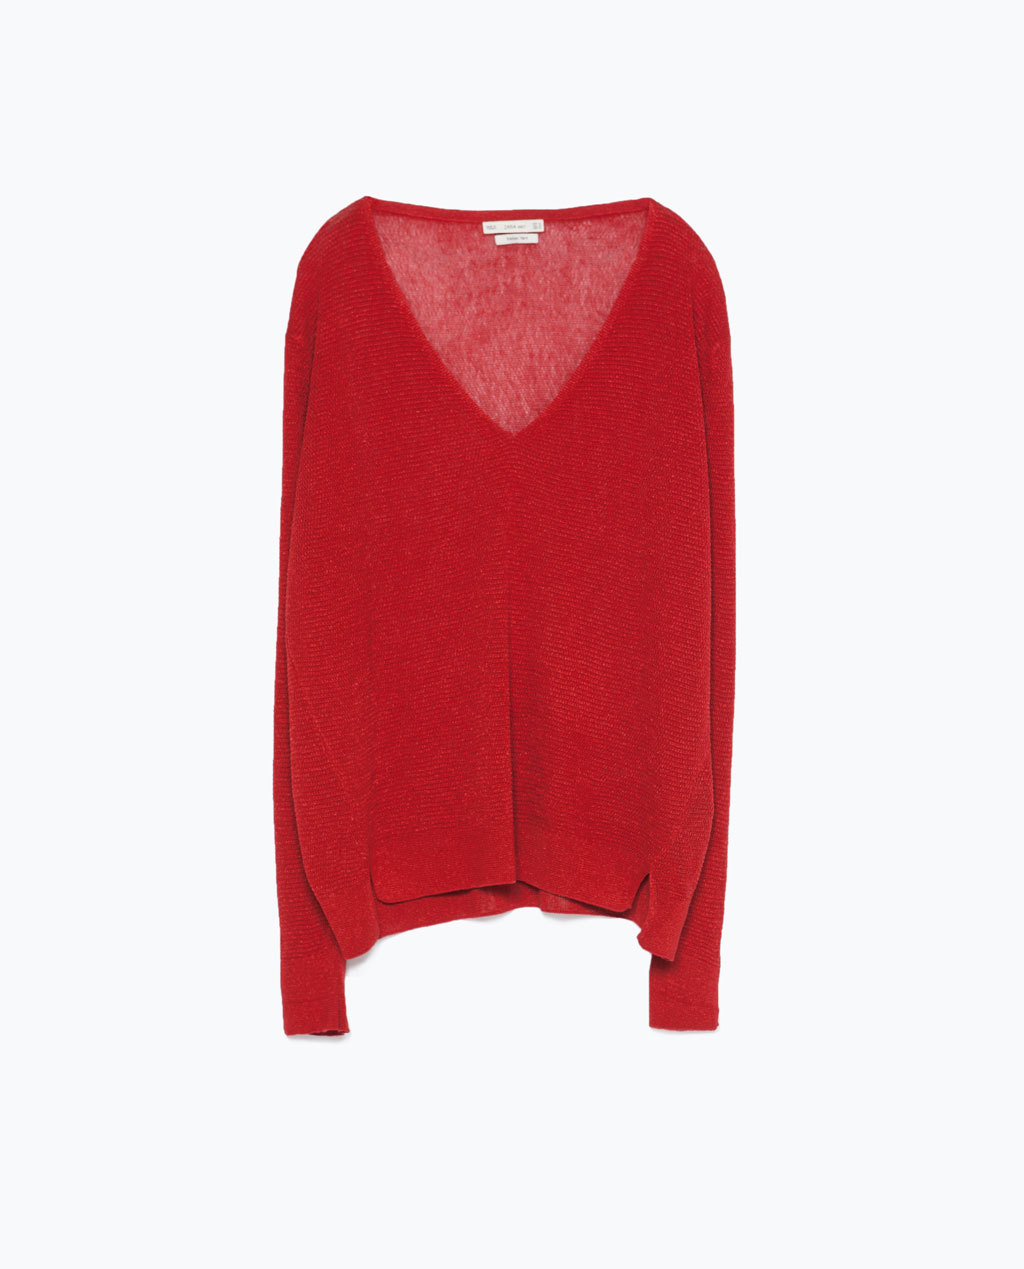 V Neck Jumper - neckline: low v-neck; pattern: plain; length: below the bottom; style: standard; predominant colour: true red; occasions: casual; fit: loose; sleeve length: long sleeve; sleeve style: standard; texture group: knits/crochet; pattern type: fabric; fibres: viscose/rayon - mix; season: s/s 2015; wardrobe: highlight